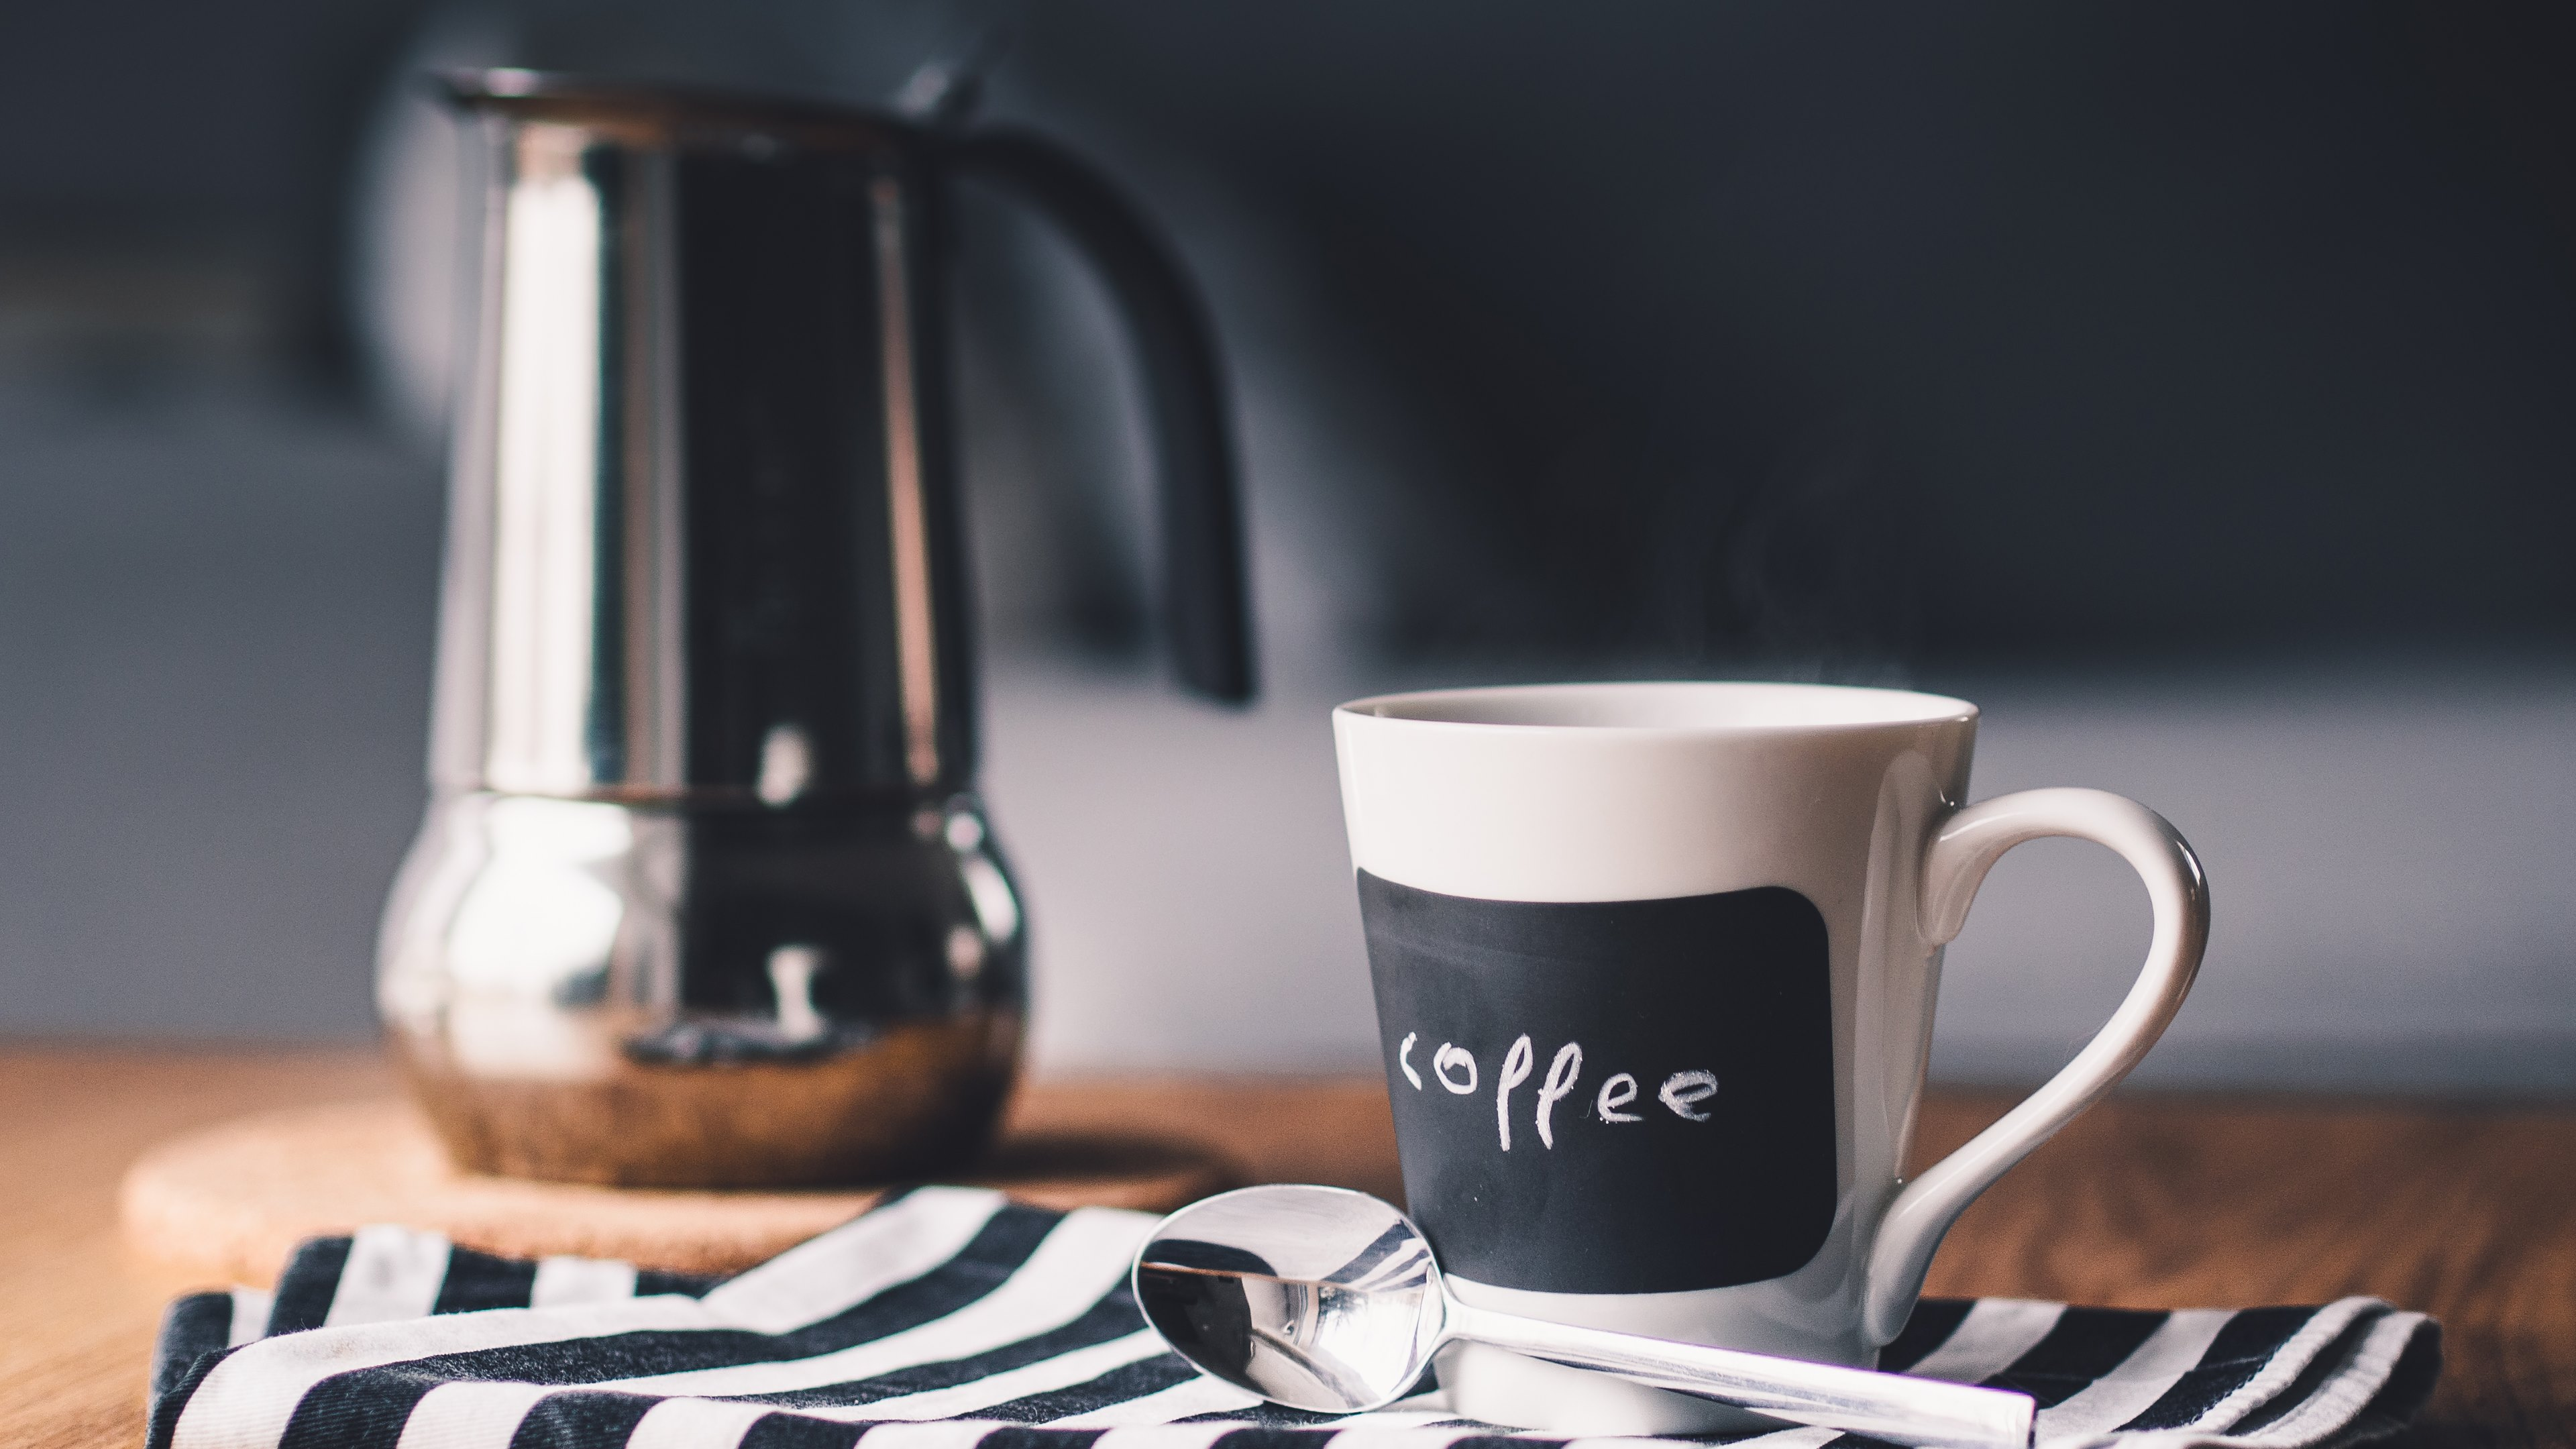 A Morning Cuppa Coffee 4k Ultra HD Wallpaper | Background Image ...